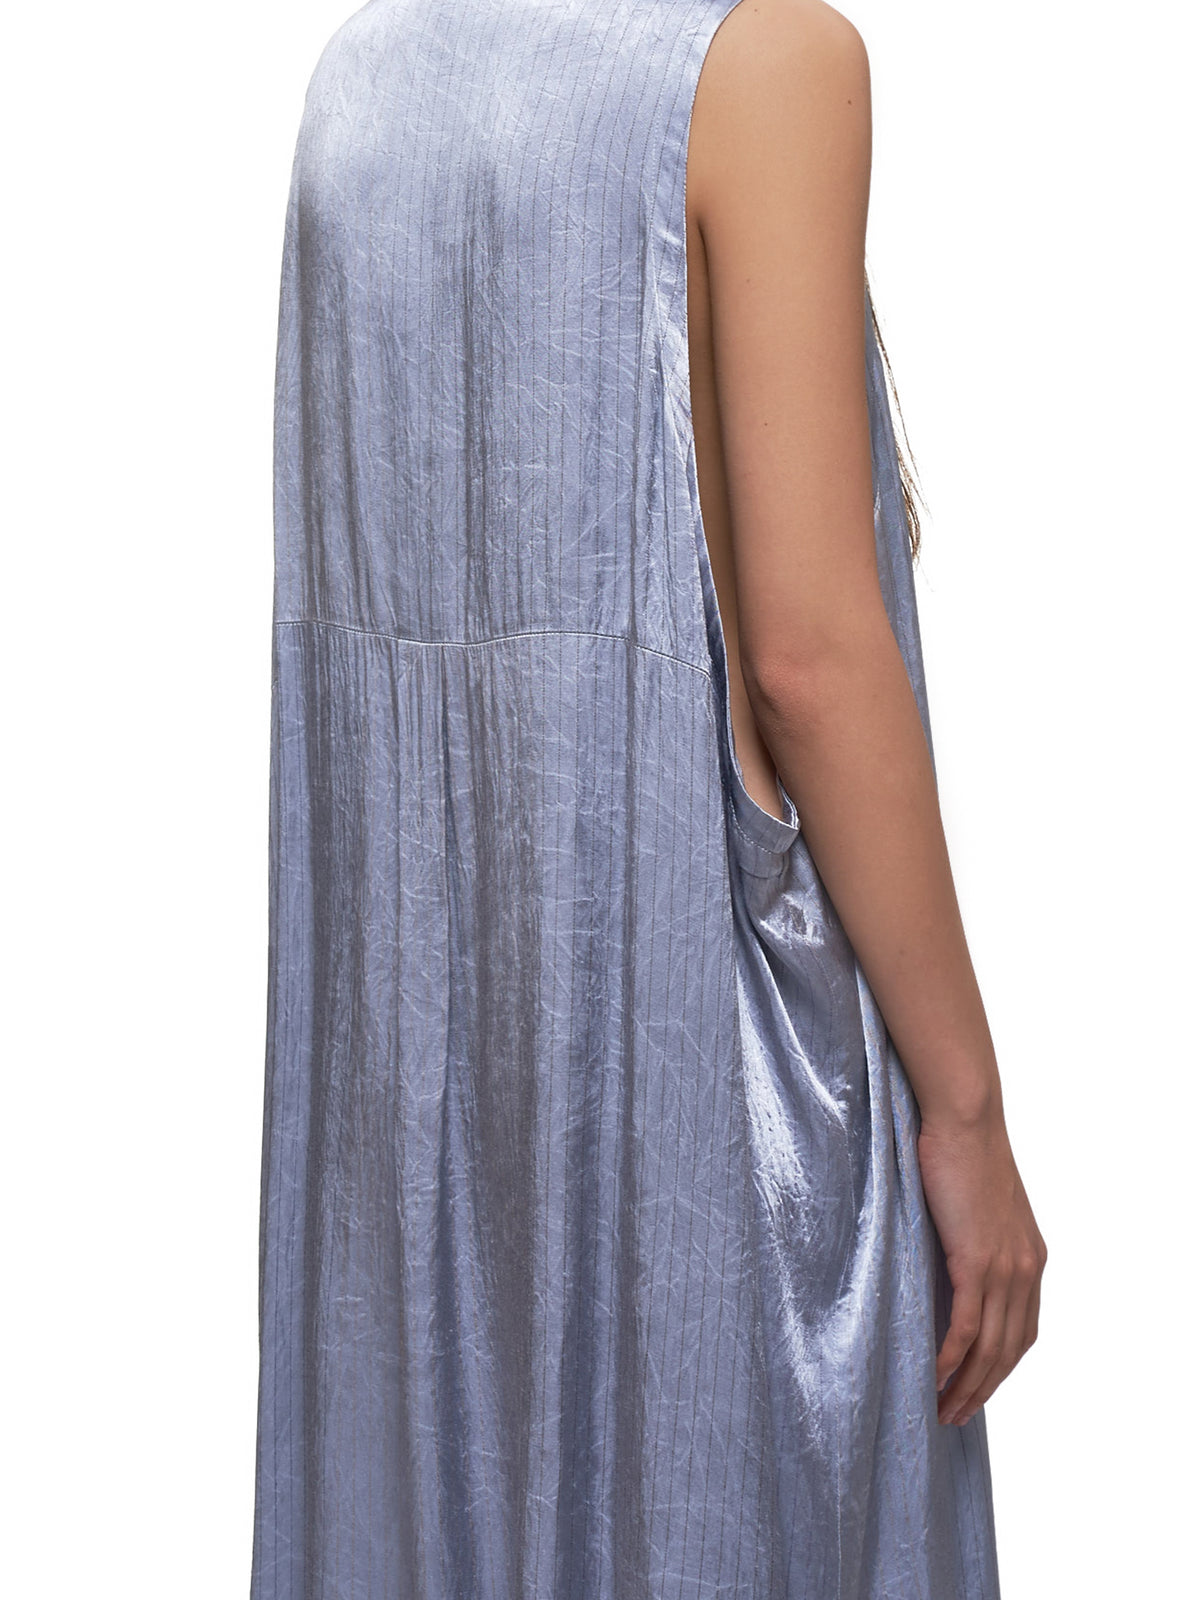 Sleeveless Shirt Dress (YN-D09-202-2-LIGHT-BLUE)